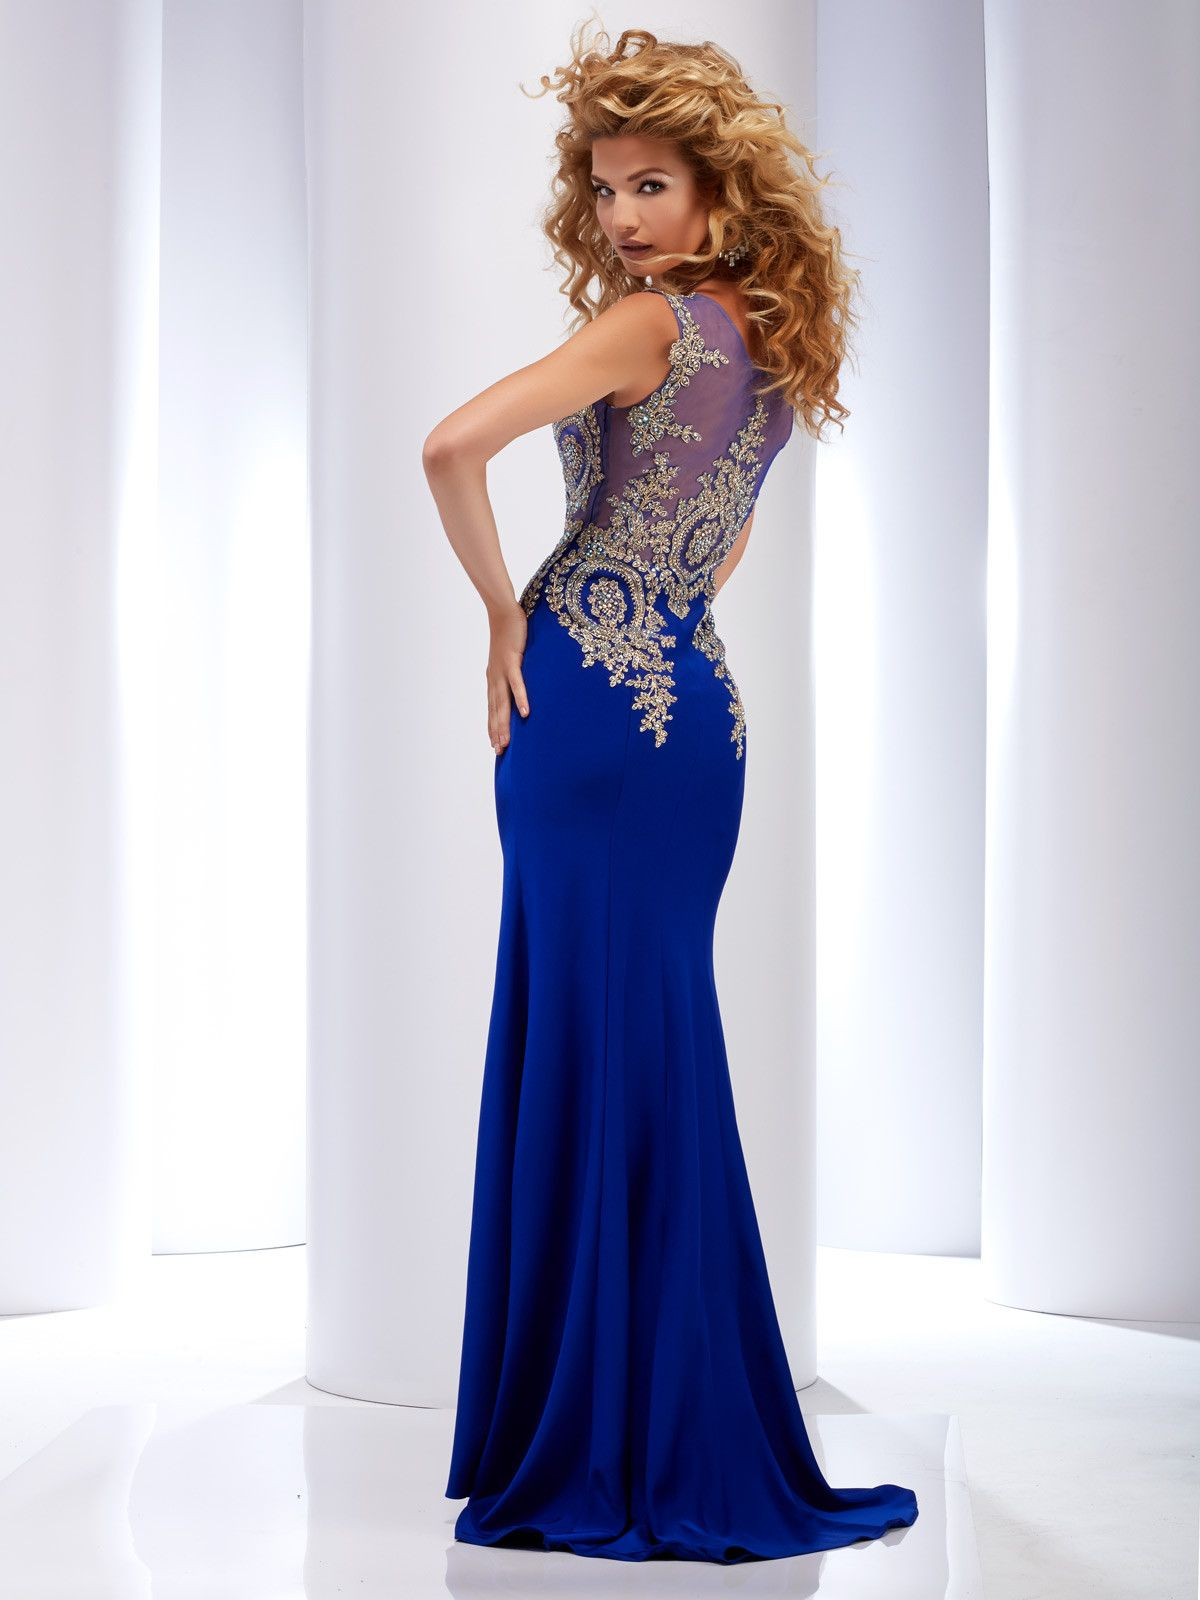 sweeping electric blue gown - HD1200×1600